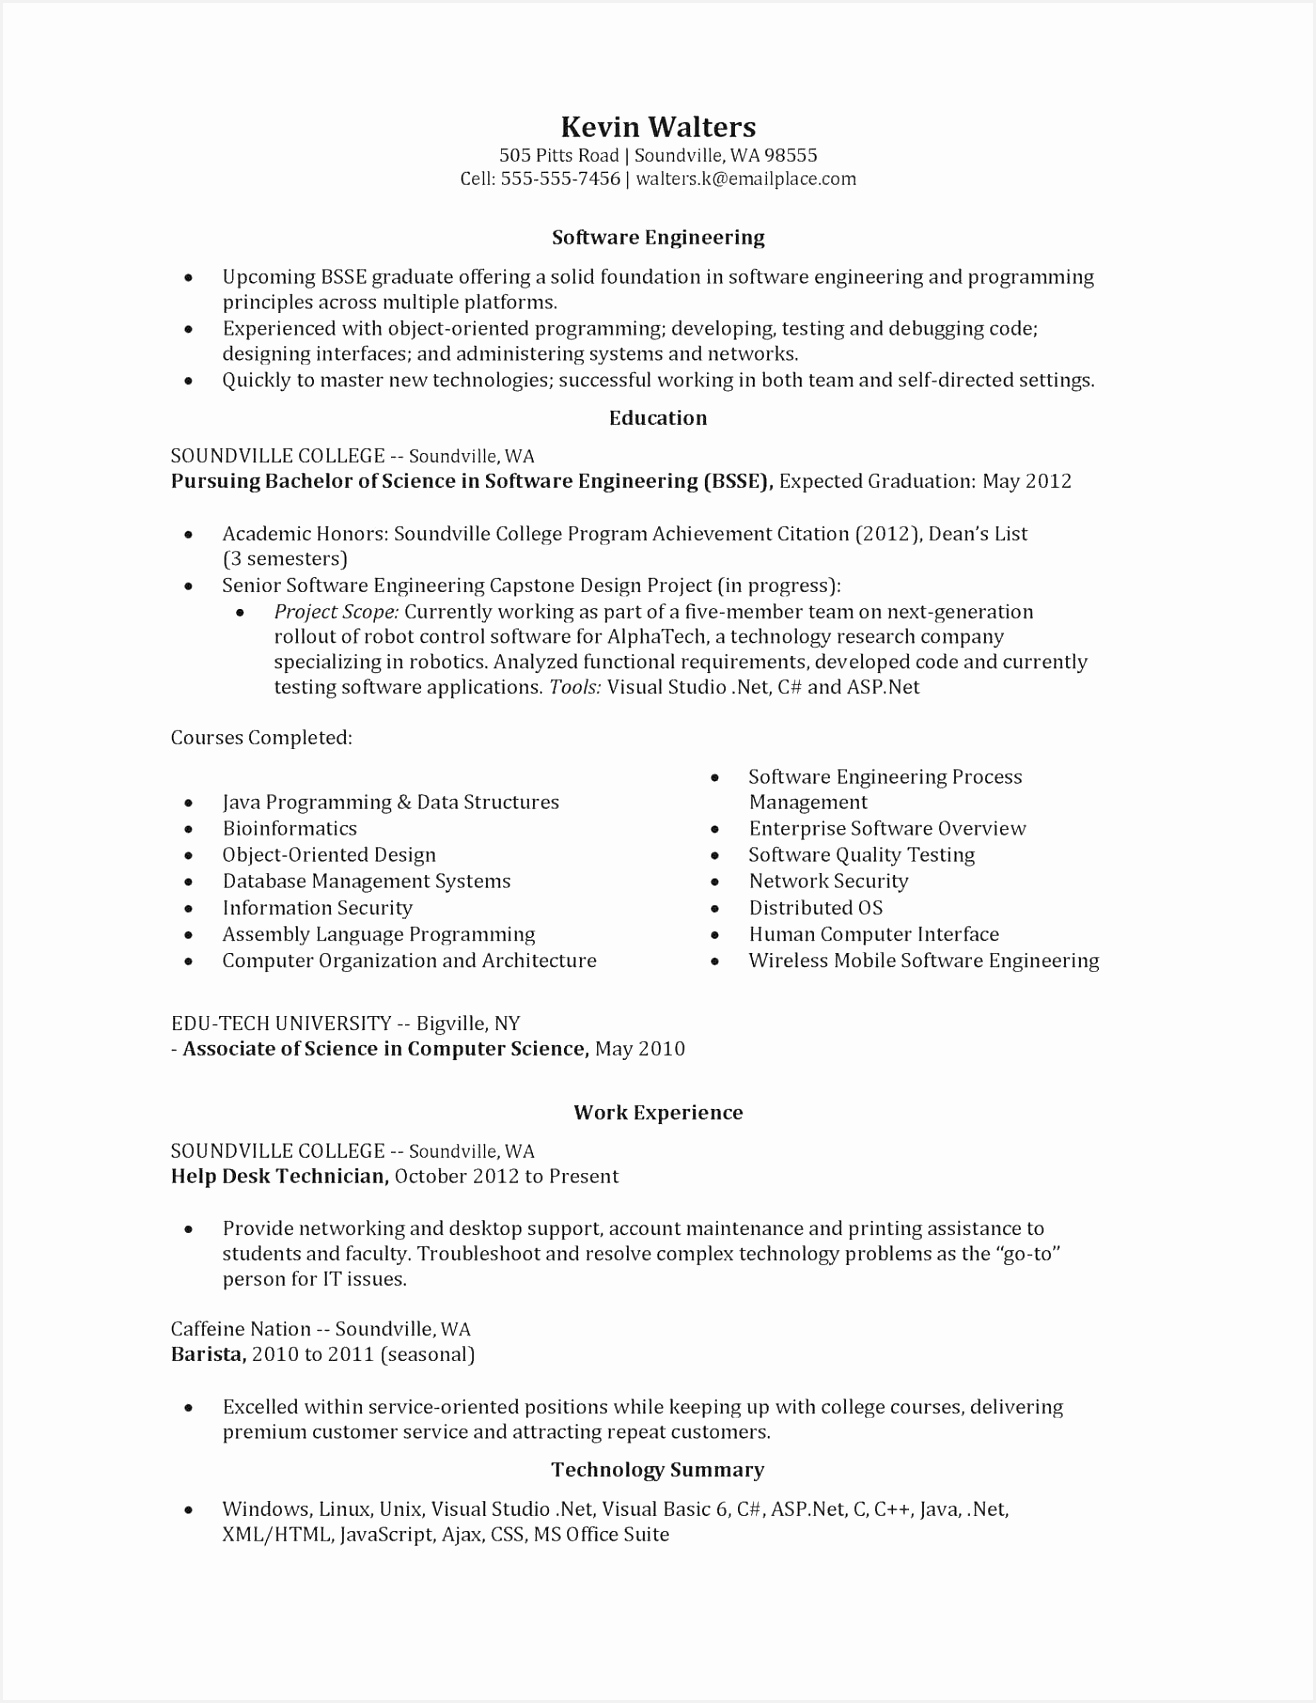 Resume Samples for Graduate School Qcsae Lovely Graduate School Resume Examples Unique Lpn Resume Sample New Line Of Resume Samples for Graduate School Gwkyf Lovely Cover Letter for Job Example Luxury Cover Letter Layout – Cover